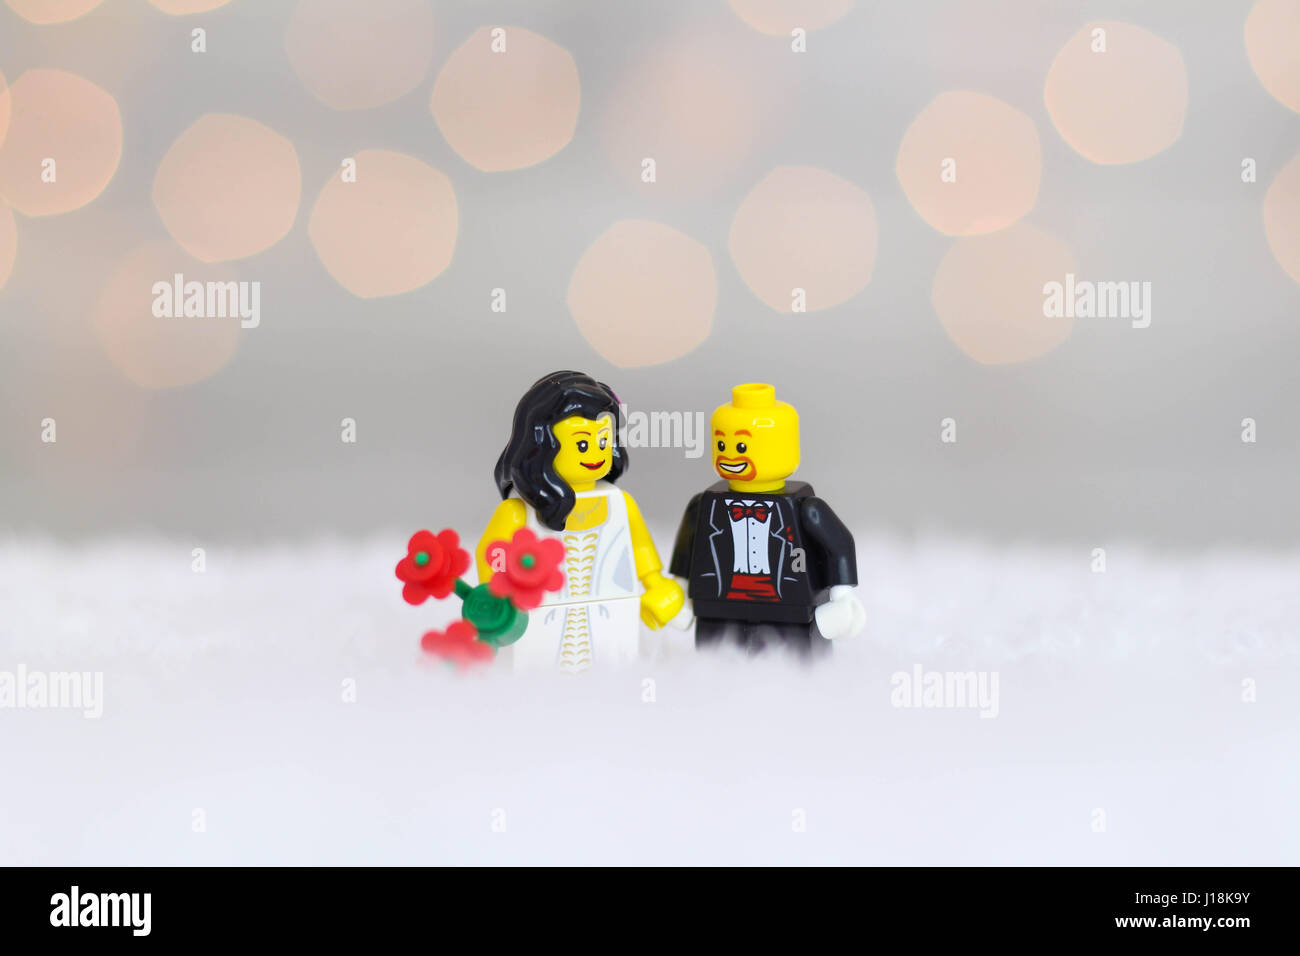 Male and female lego couple dressed up for their wedding - Stock Image